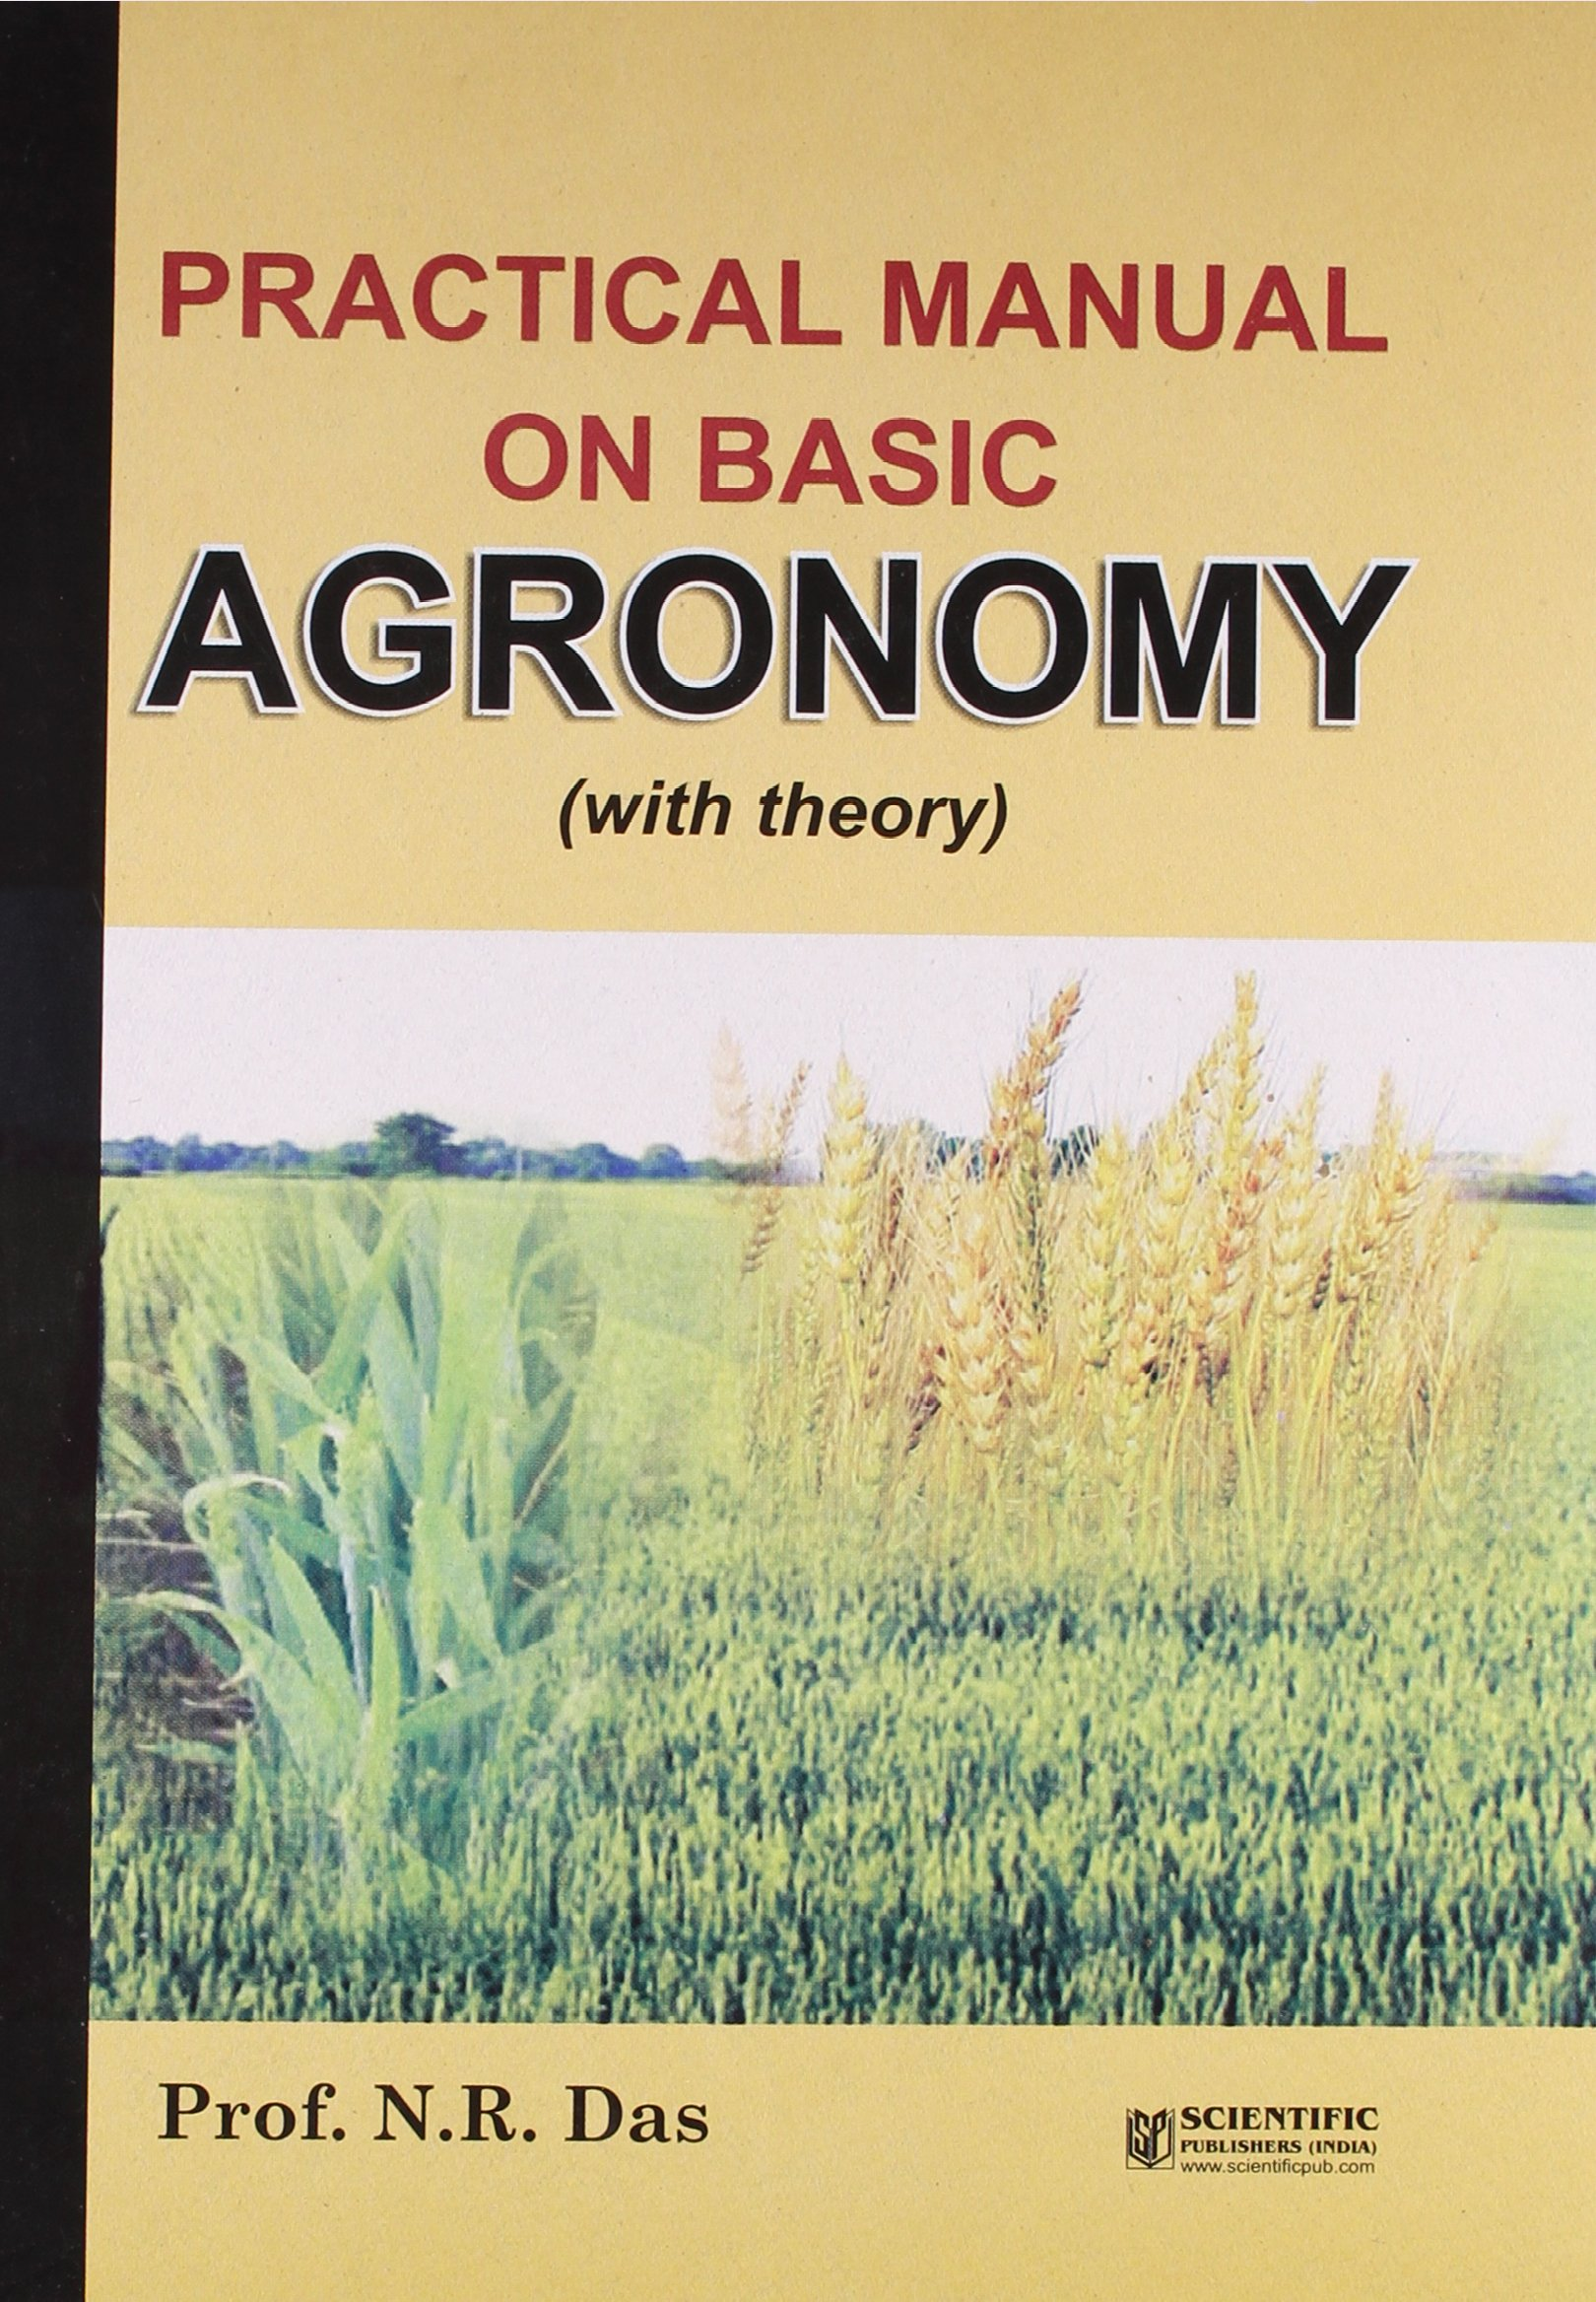 practical manual on basic agronomy n r das 9788172335854 amazon rh amazon com practical manual on basic agronomy with theory